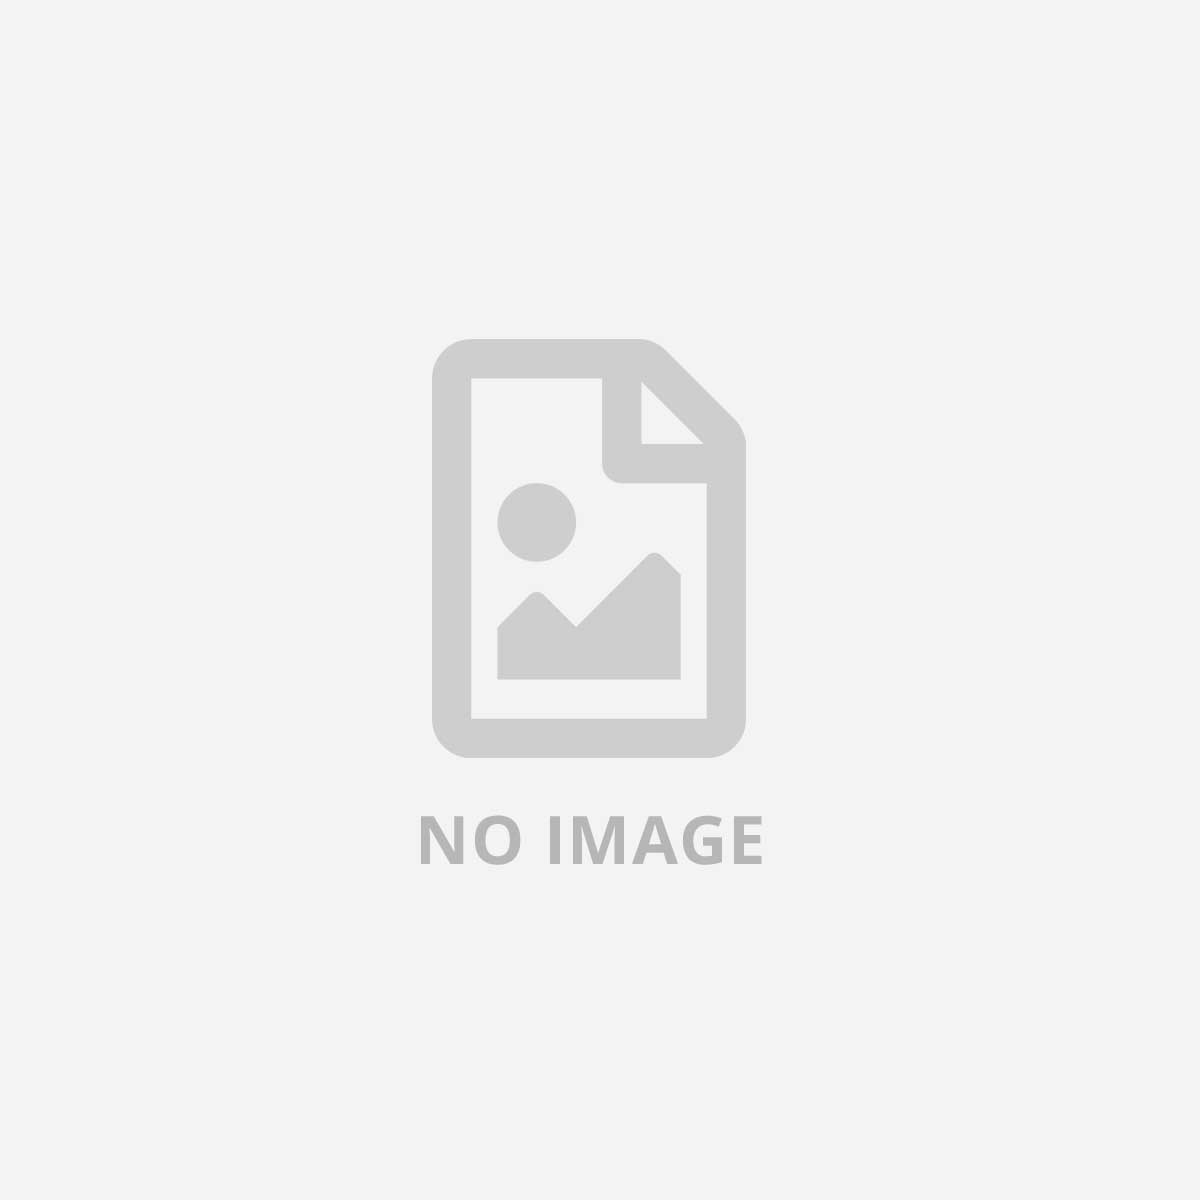 SAMSUNG LEATHER VIEW COVER BLACK N9